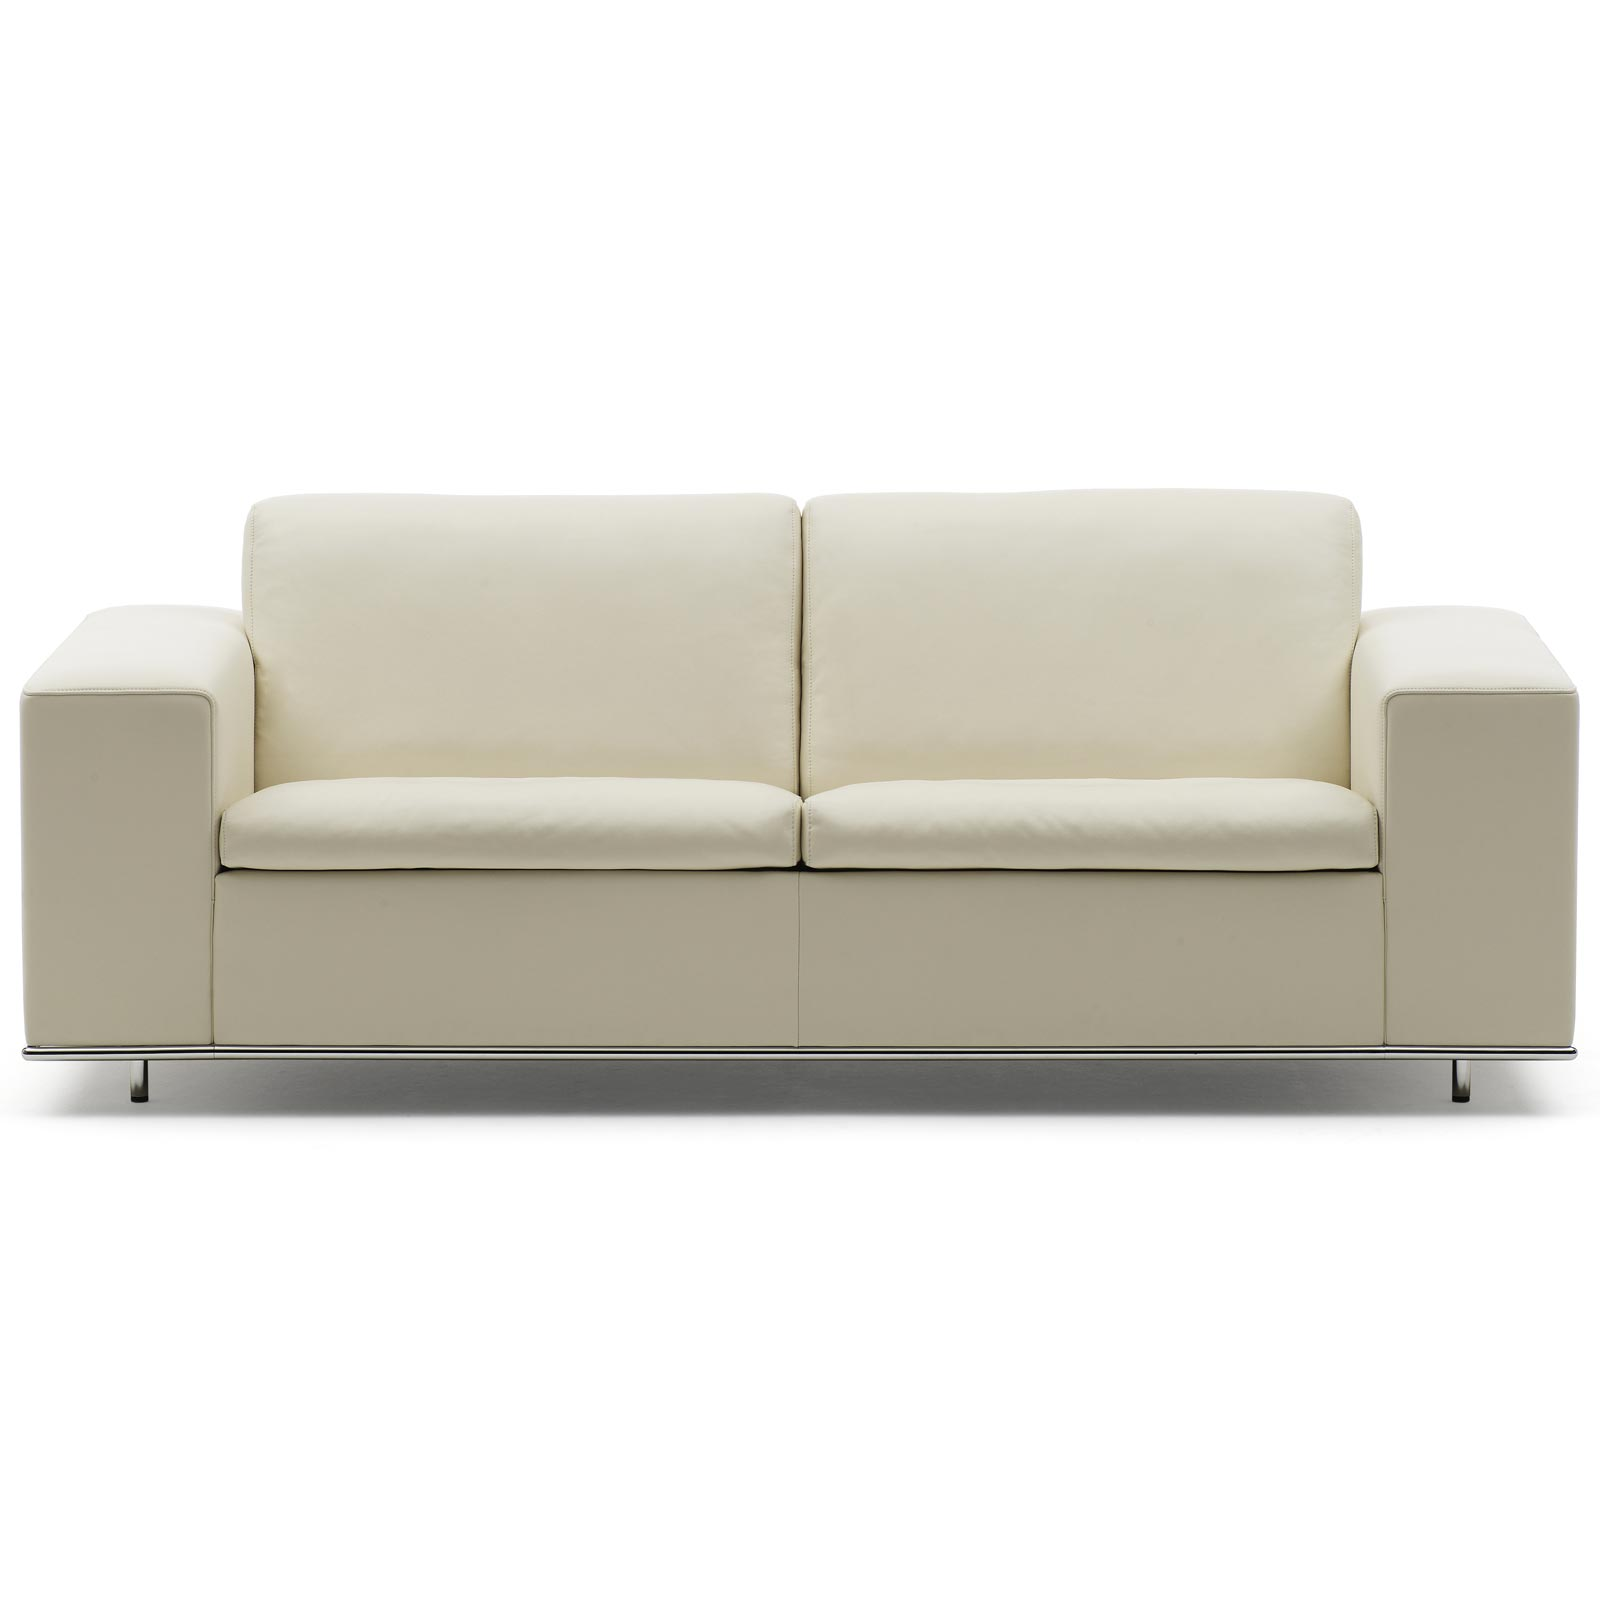 de sede sleeper sofa leather with wooden frame ds 3 by